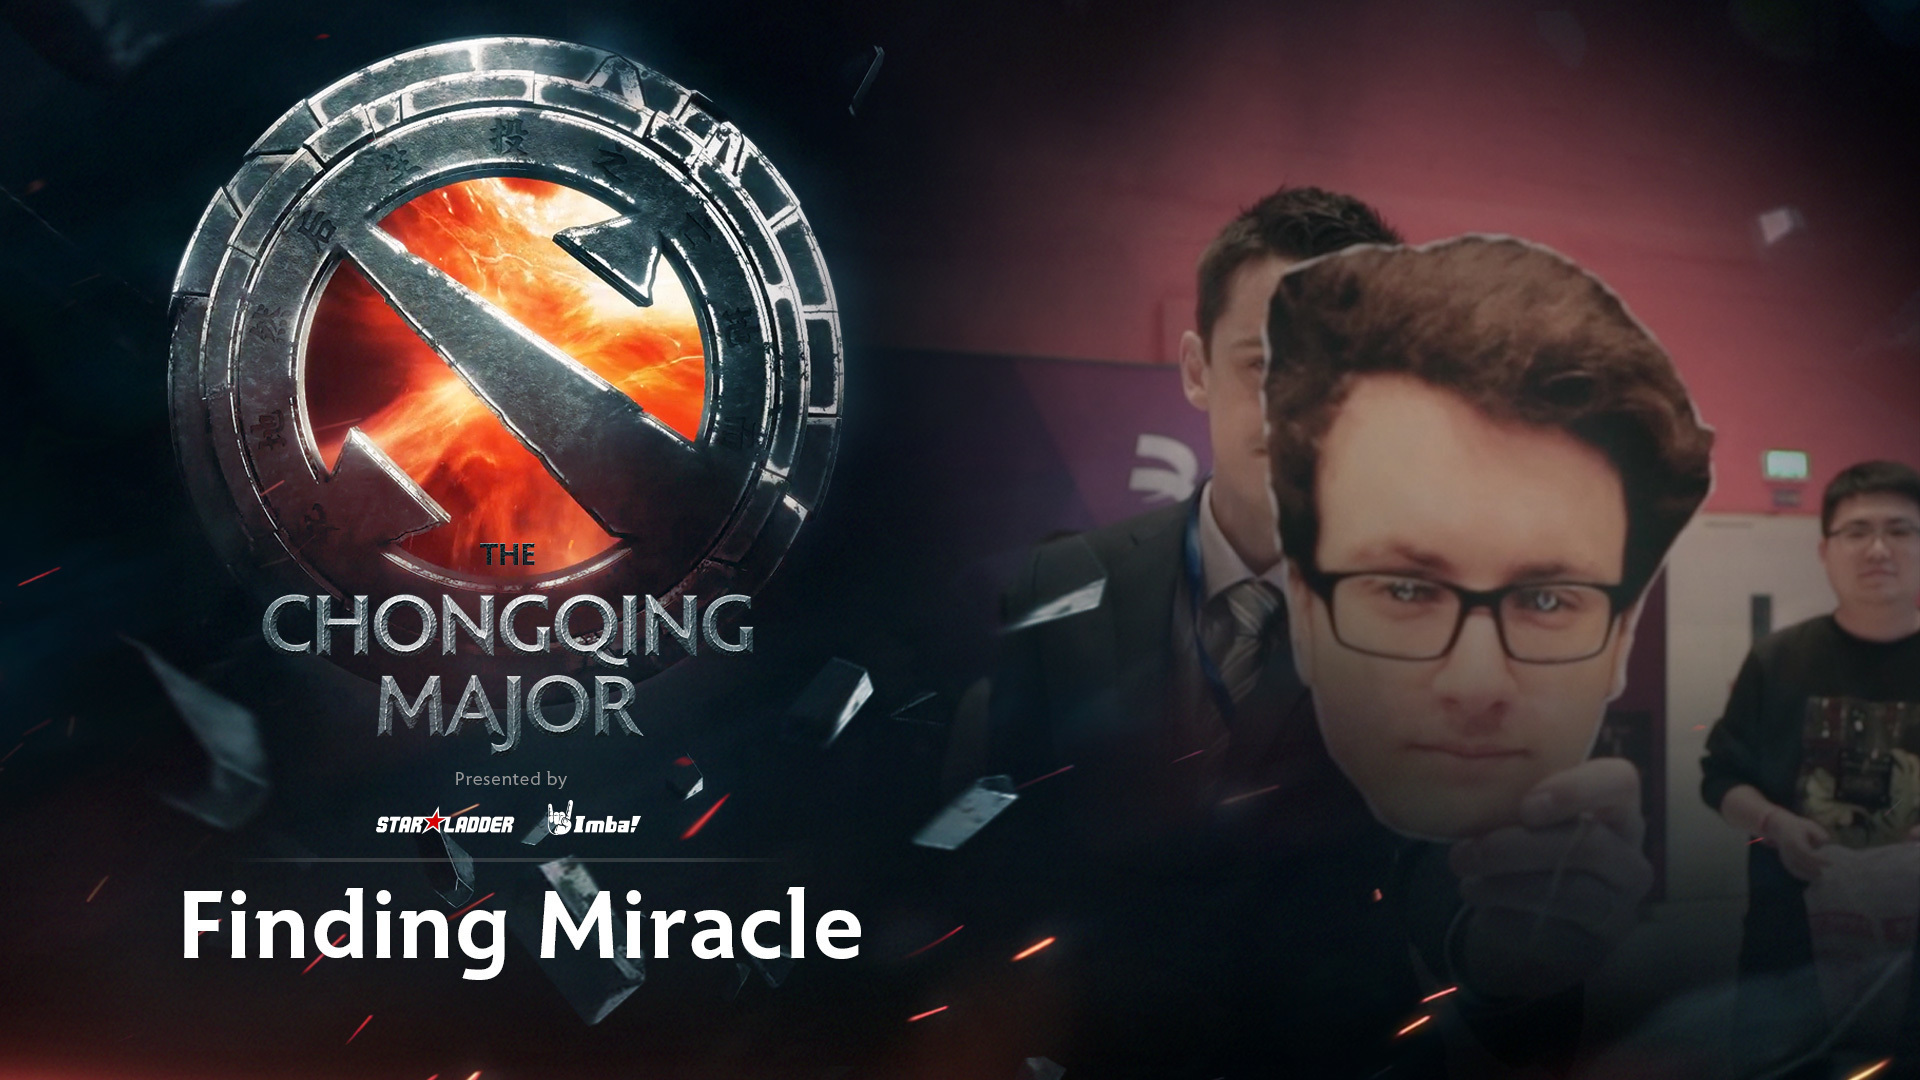 The Chongqing Major: Finding Miracle